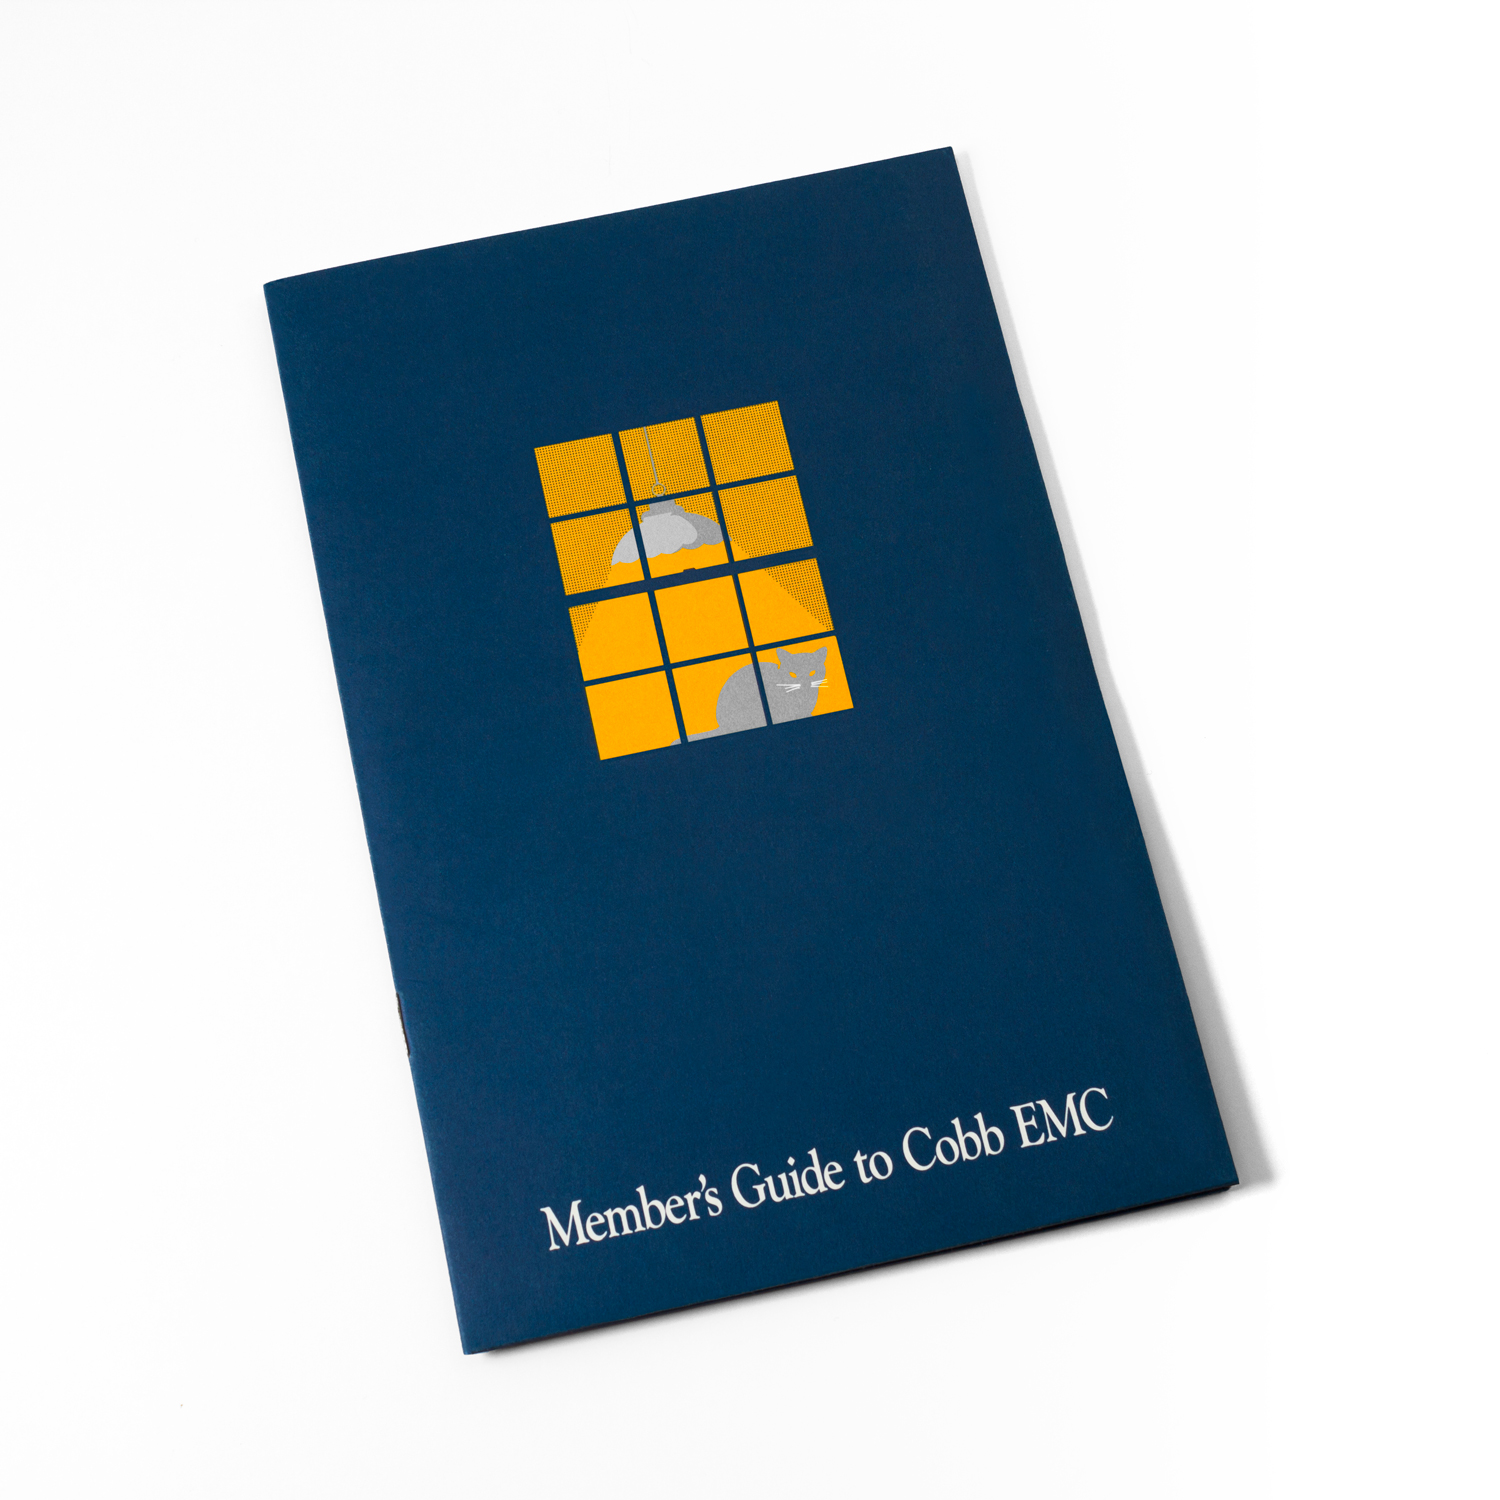 PRINT DESIGN - Cobb EMC | member guide - ©UnParalleled, LLC dba UP-Ideas / Roger Sawhill / Mark Braught - Atlanta, Georgia | Lawrenceville, Georgia | Commerce, Georgia